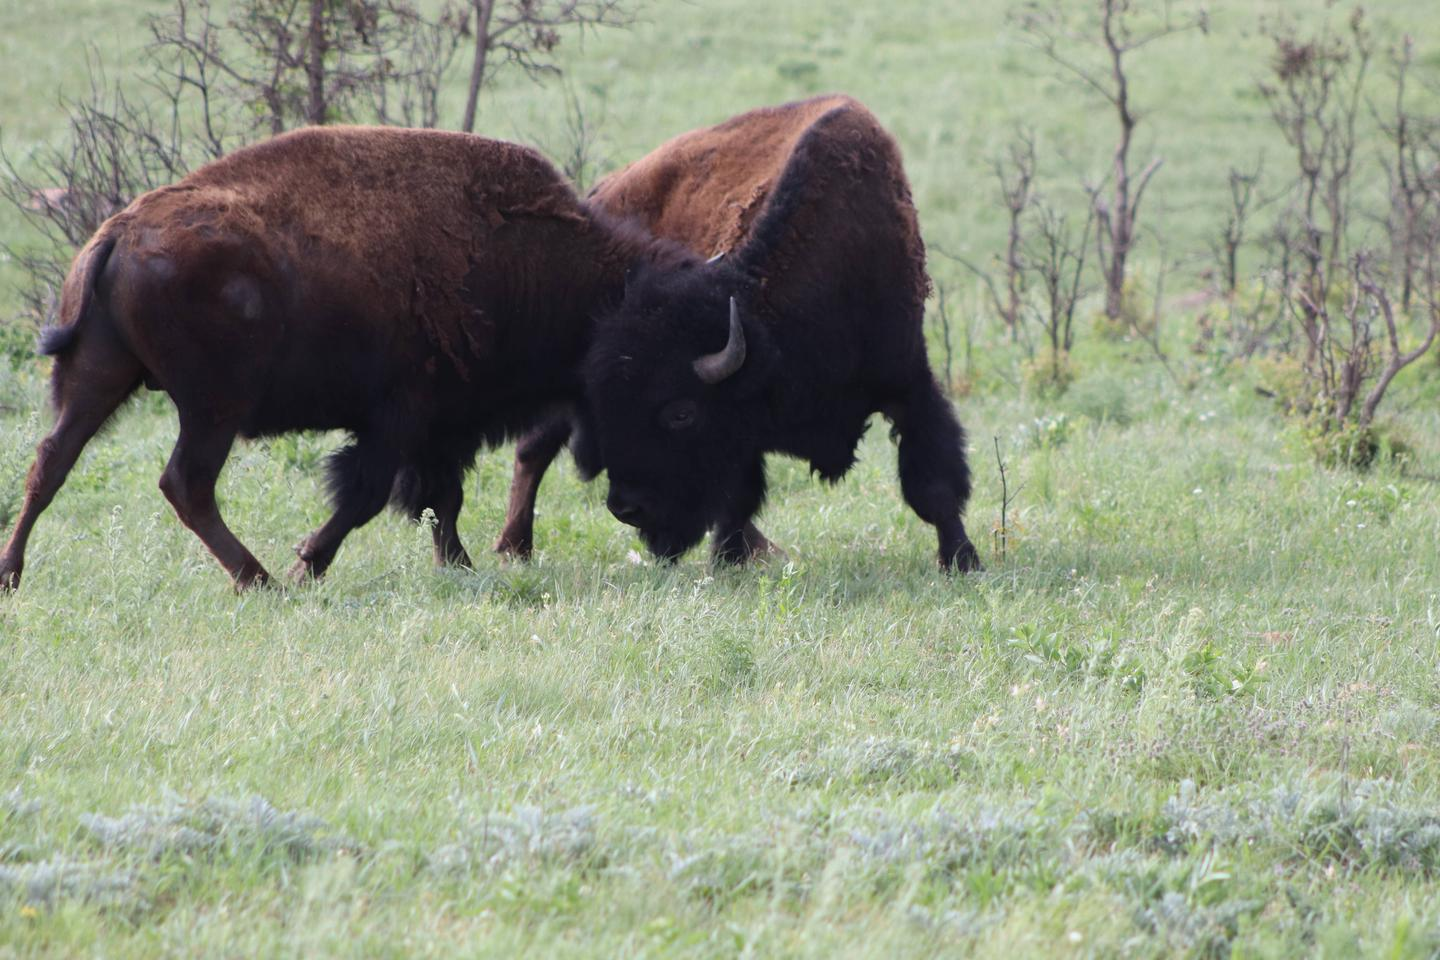 Two young male American bison playfully sparring.Wildlife abounds at the Wichita Mountains. Bison, elk, deer, and longhorn all roam freely.